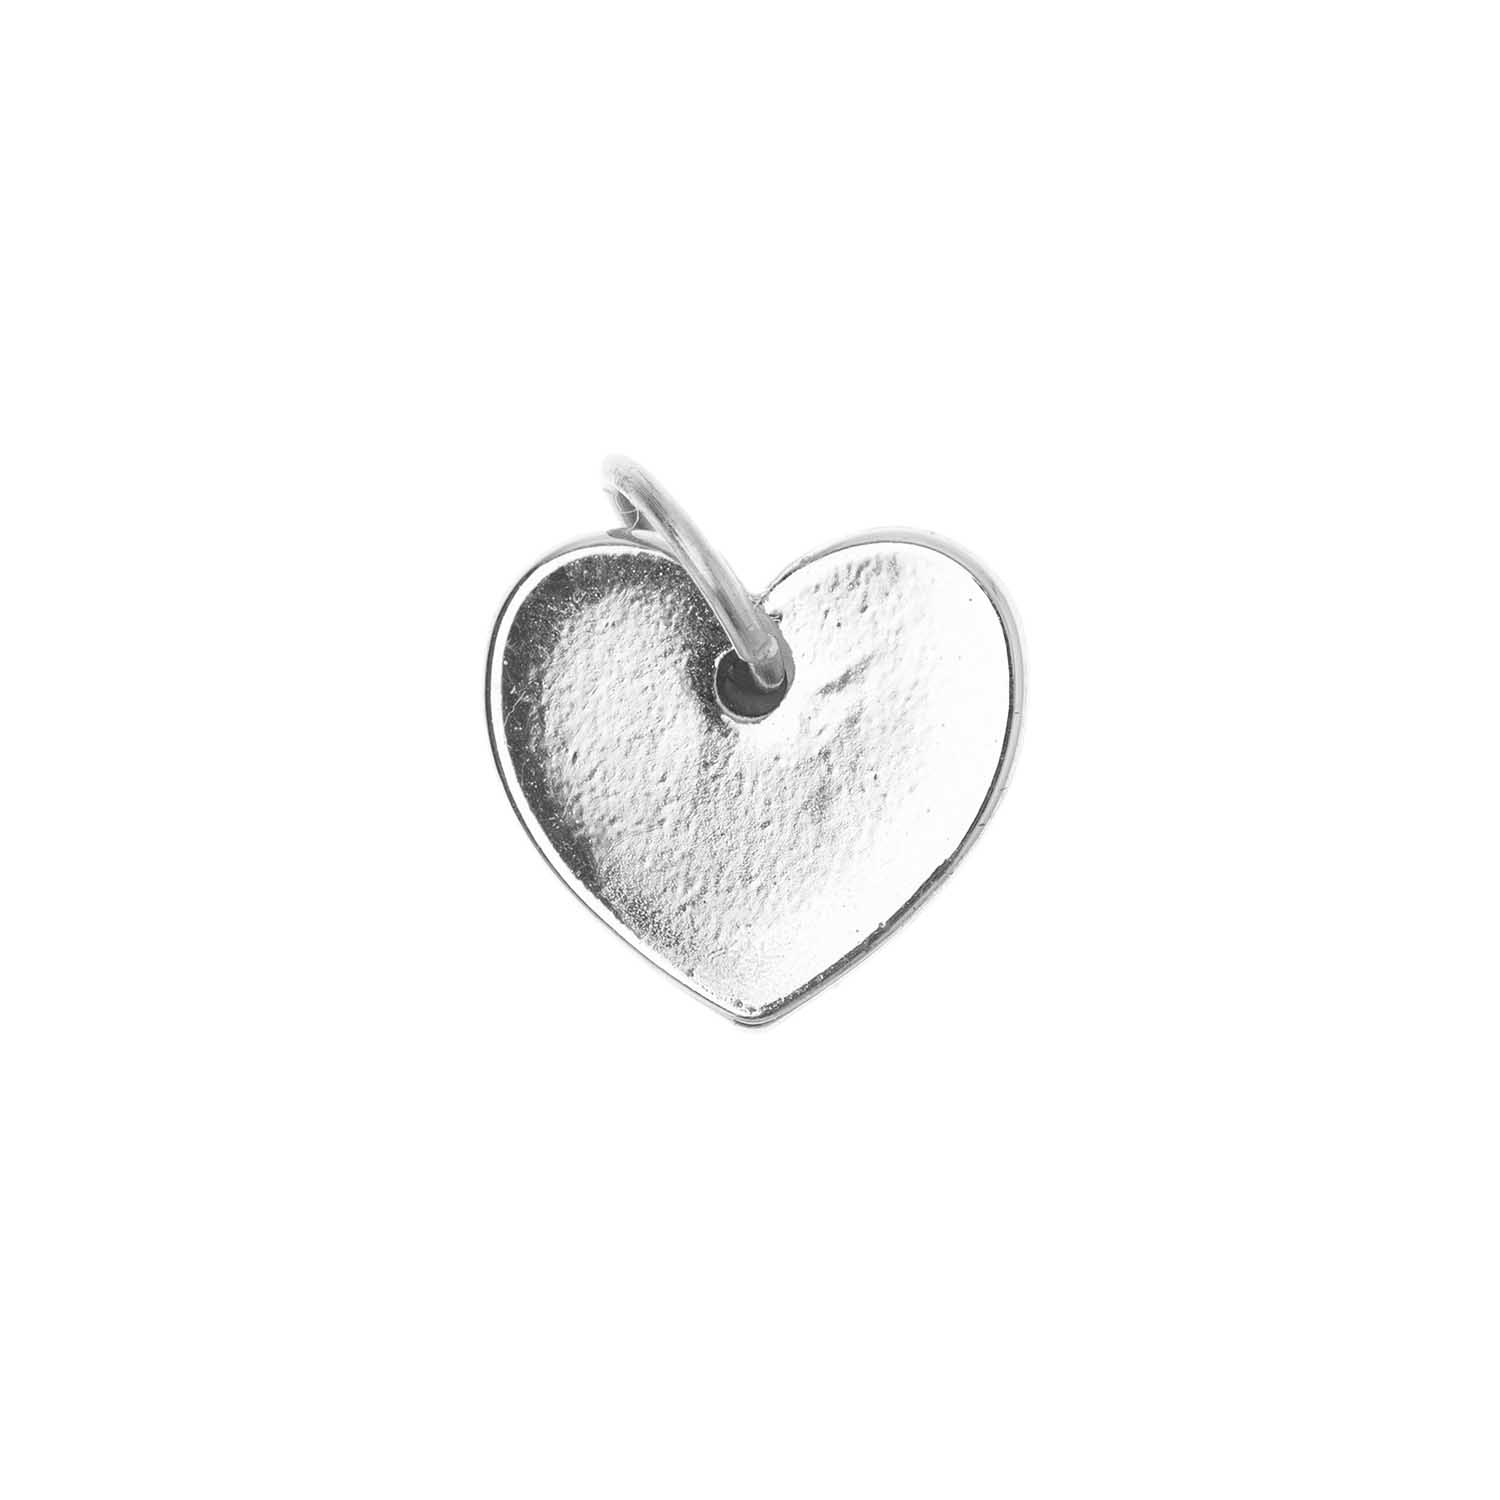 Rico NAY HEART PENDANT, SILVER 10/9 MM